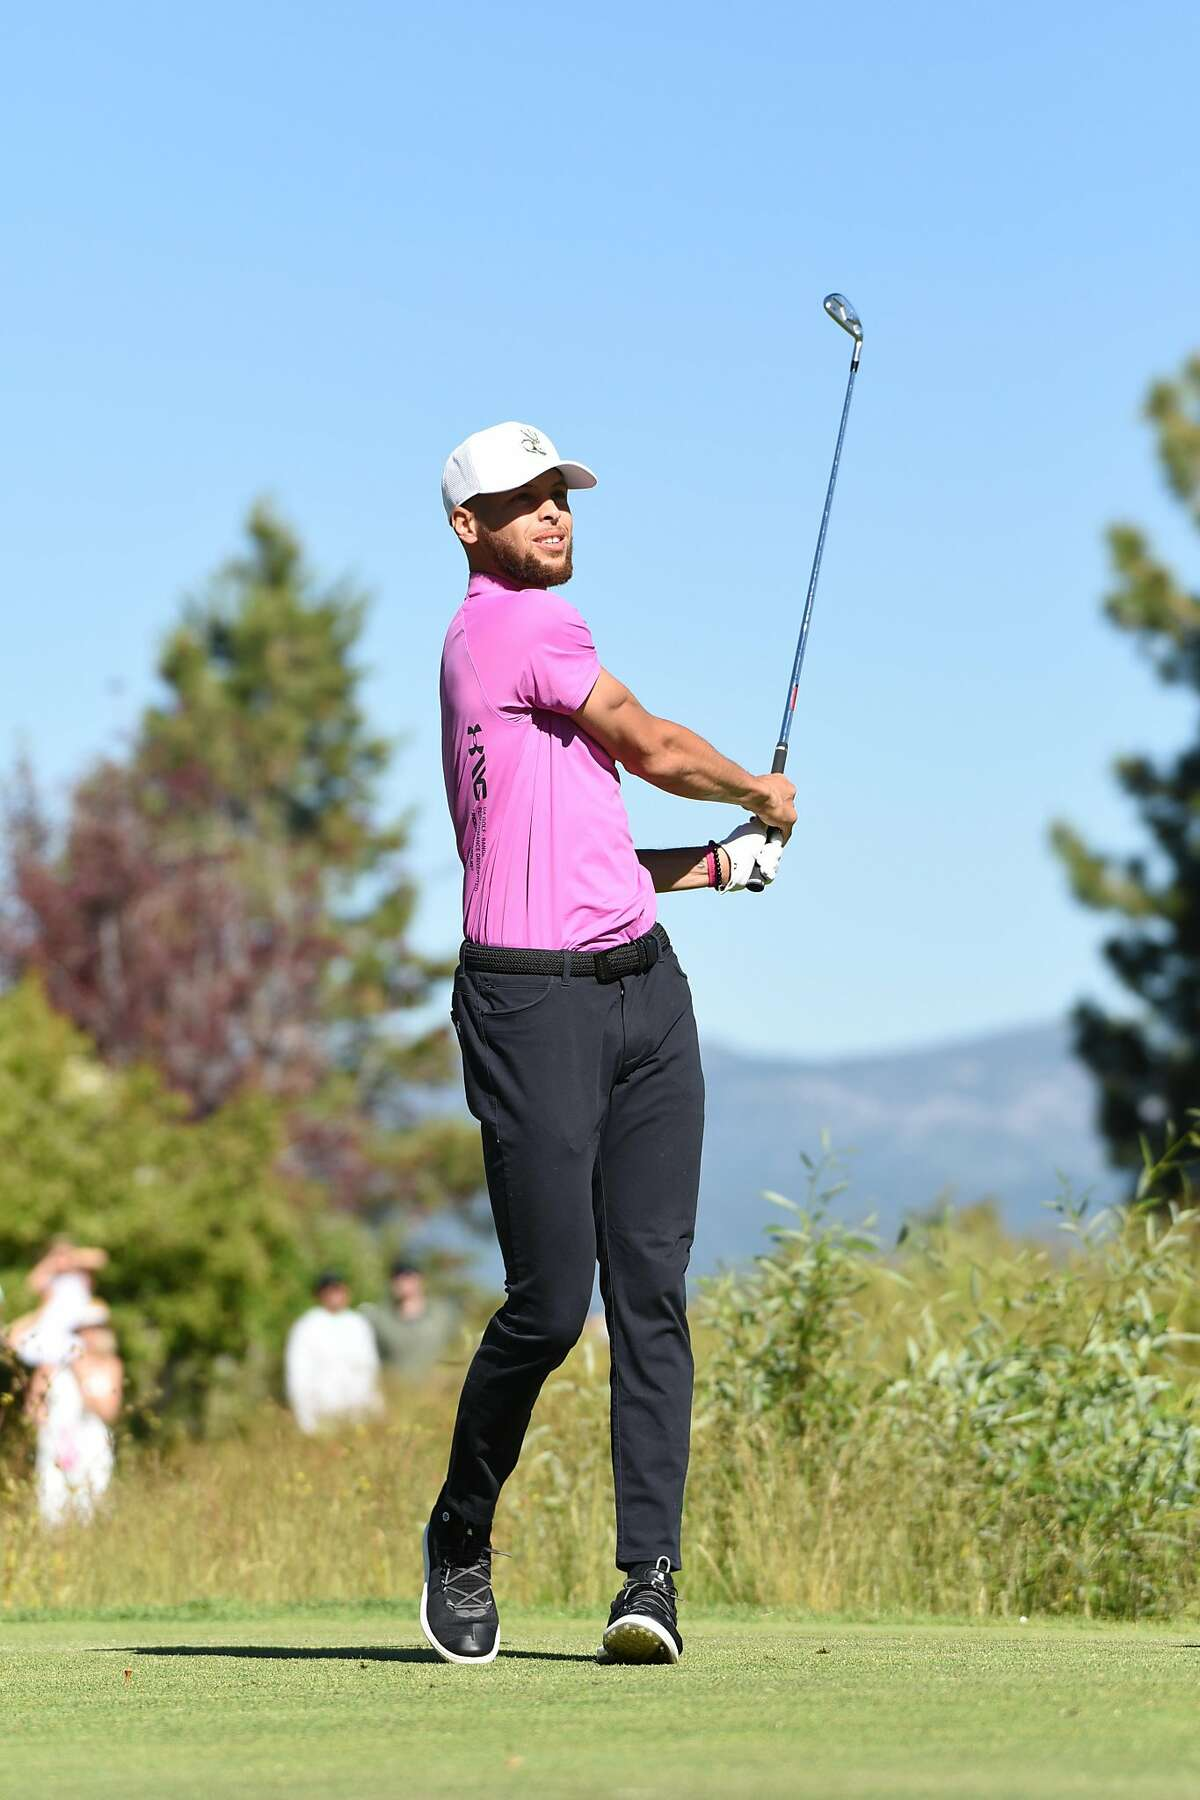 Steph Curry tees off on the first hole of the 2nd round of the American Century Championship at Edgewood Golf Course at Lake Tahoe Photo credit: Jeff Bayer/ American Century Championship